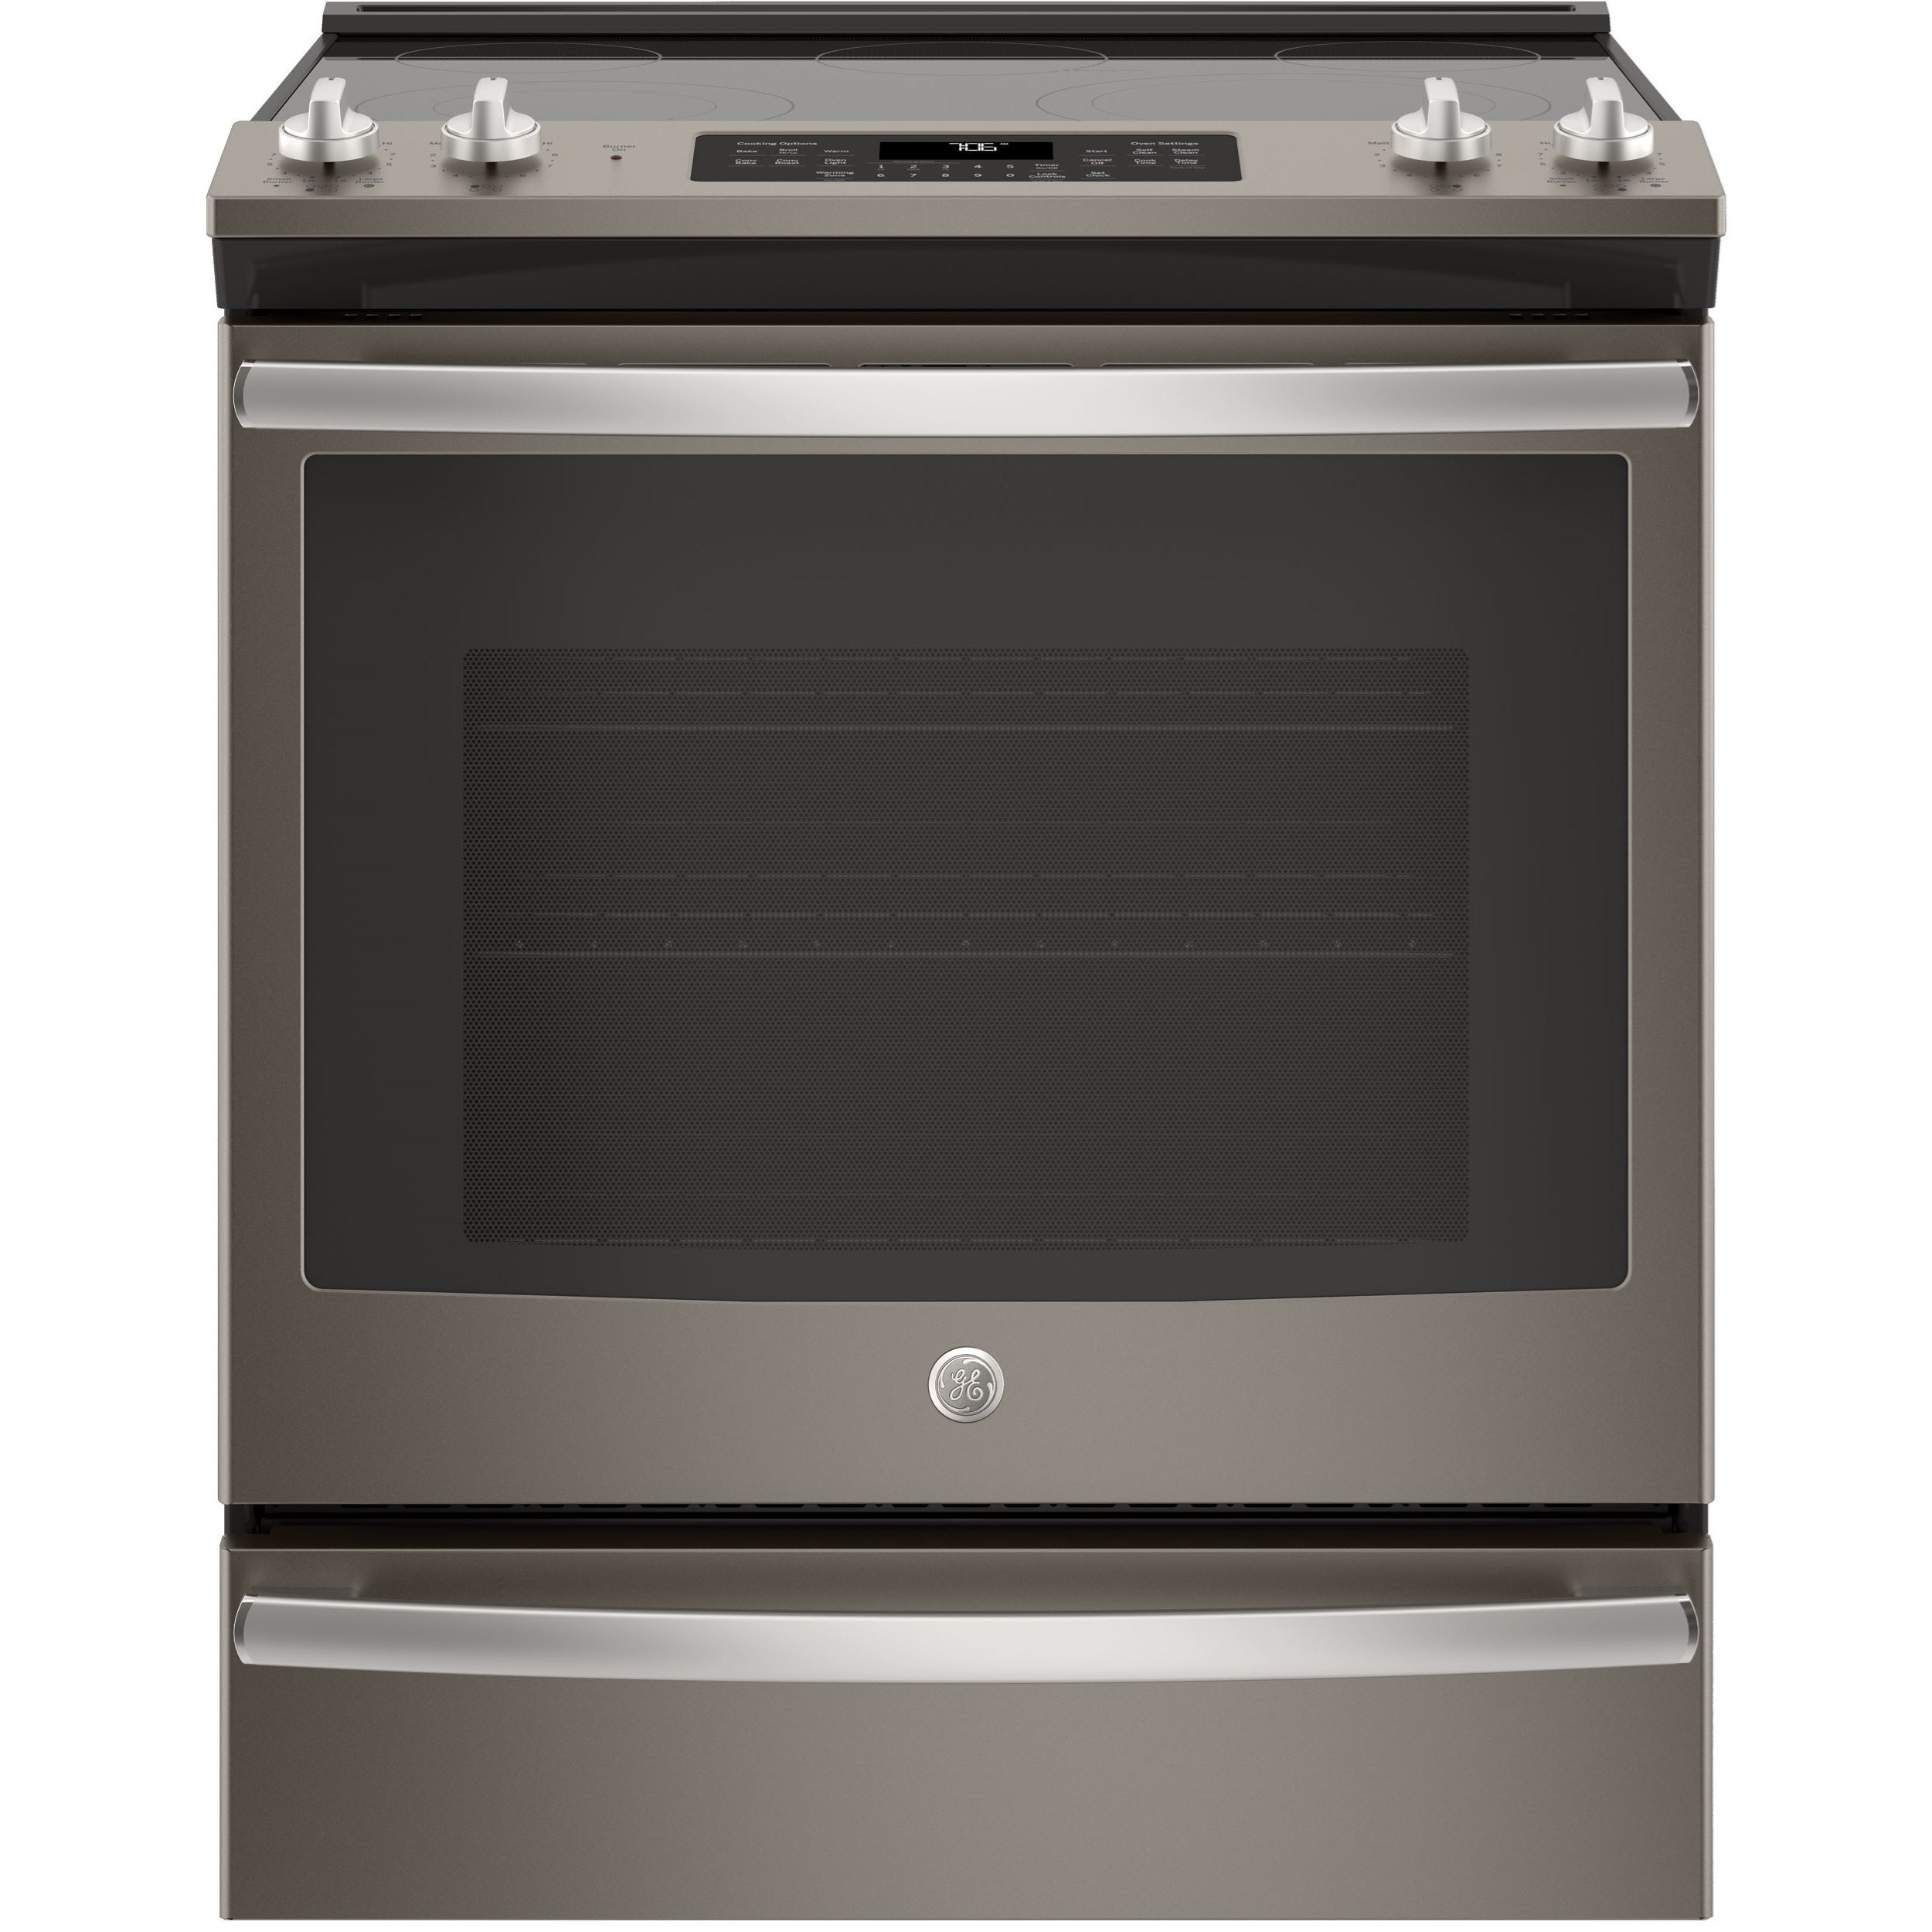 """GE Electric Ranges 5.3 Cu. Ft. 30"""" Slide-In Electric Range by GE Appliances at Fisher Home Furnishings"""